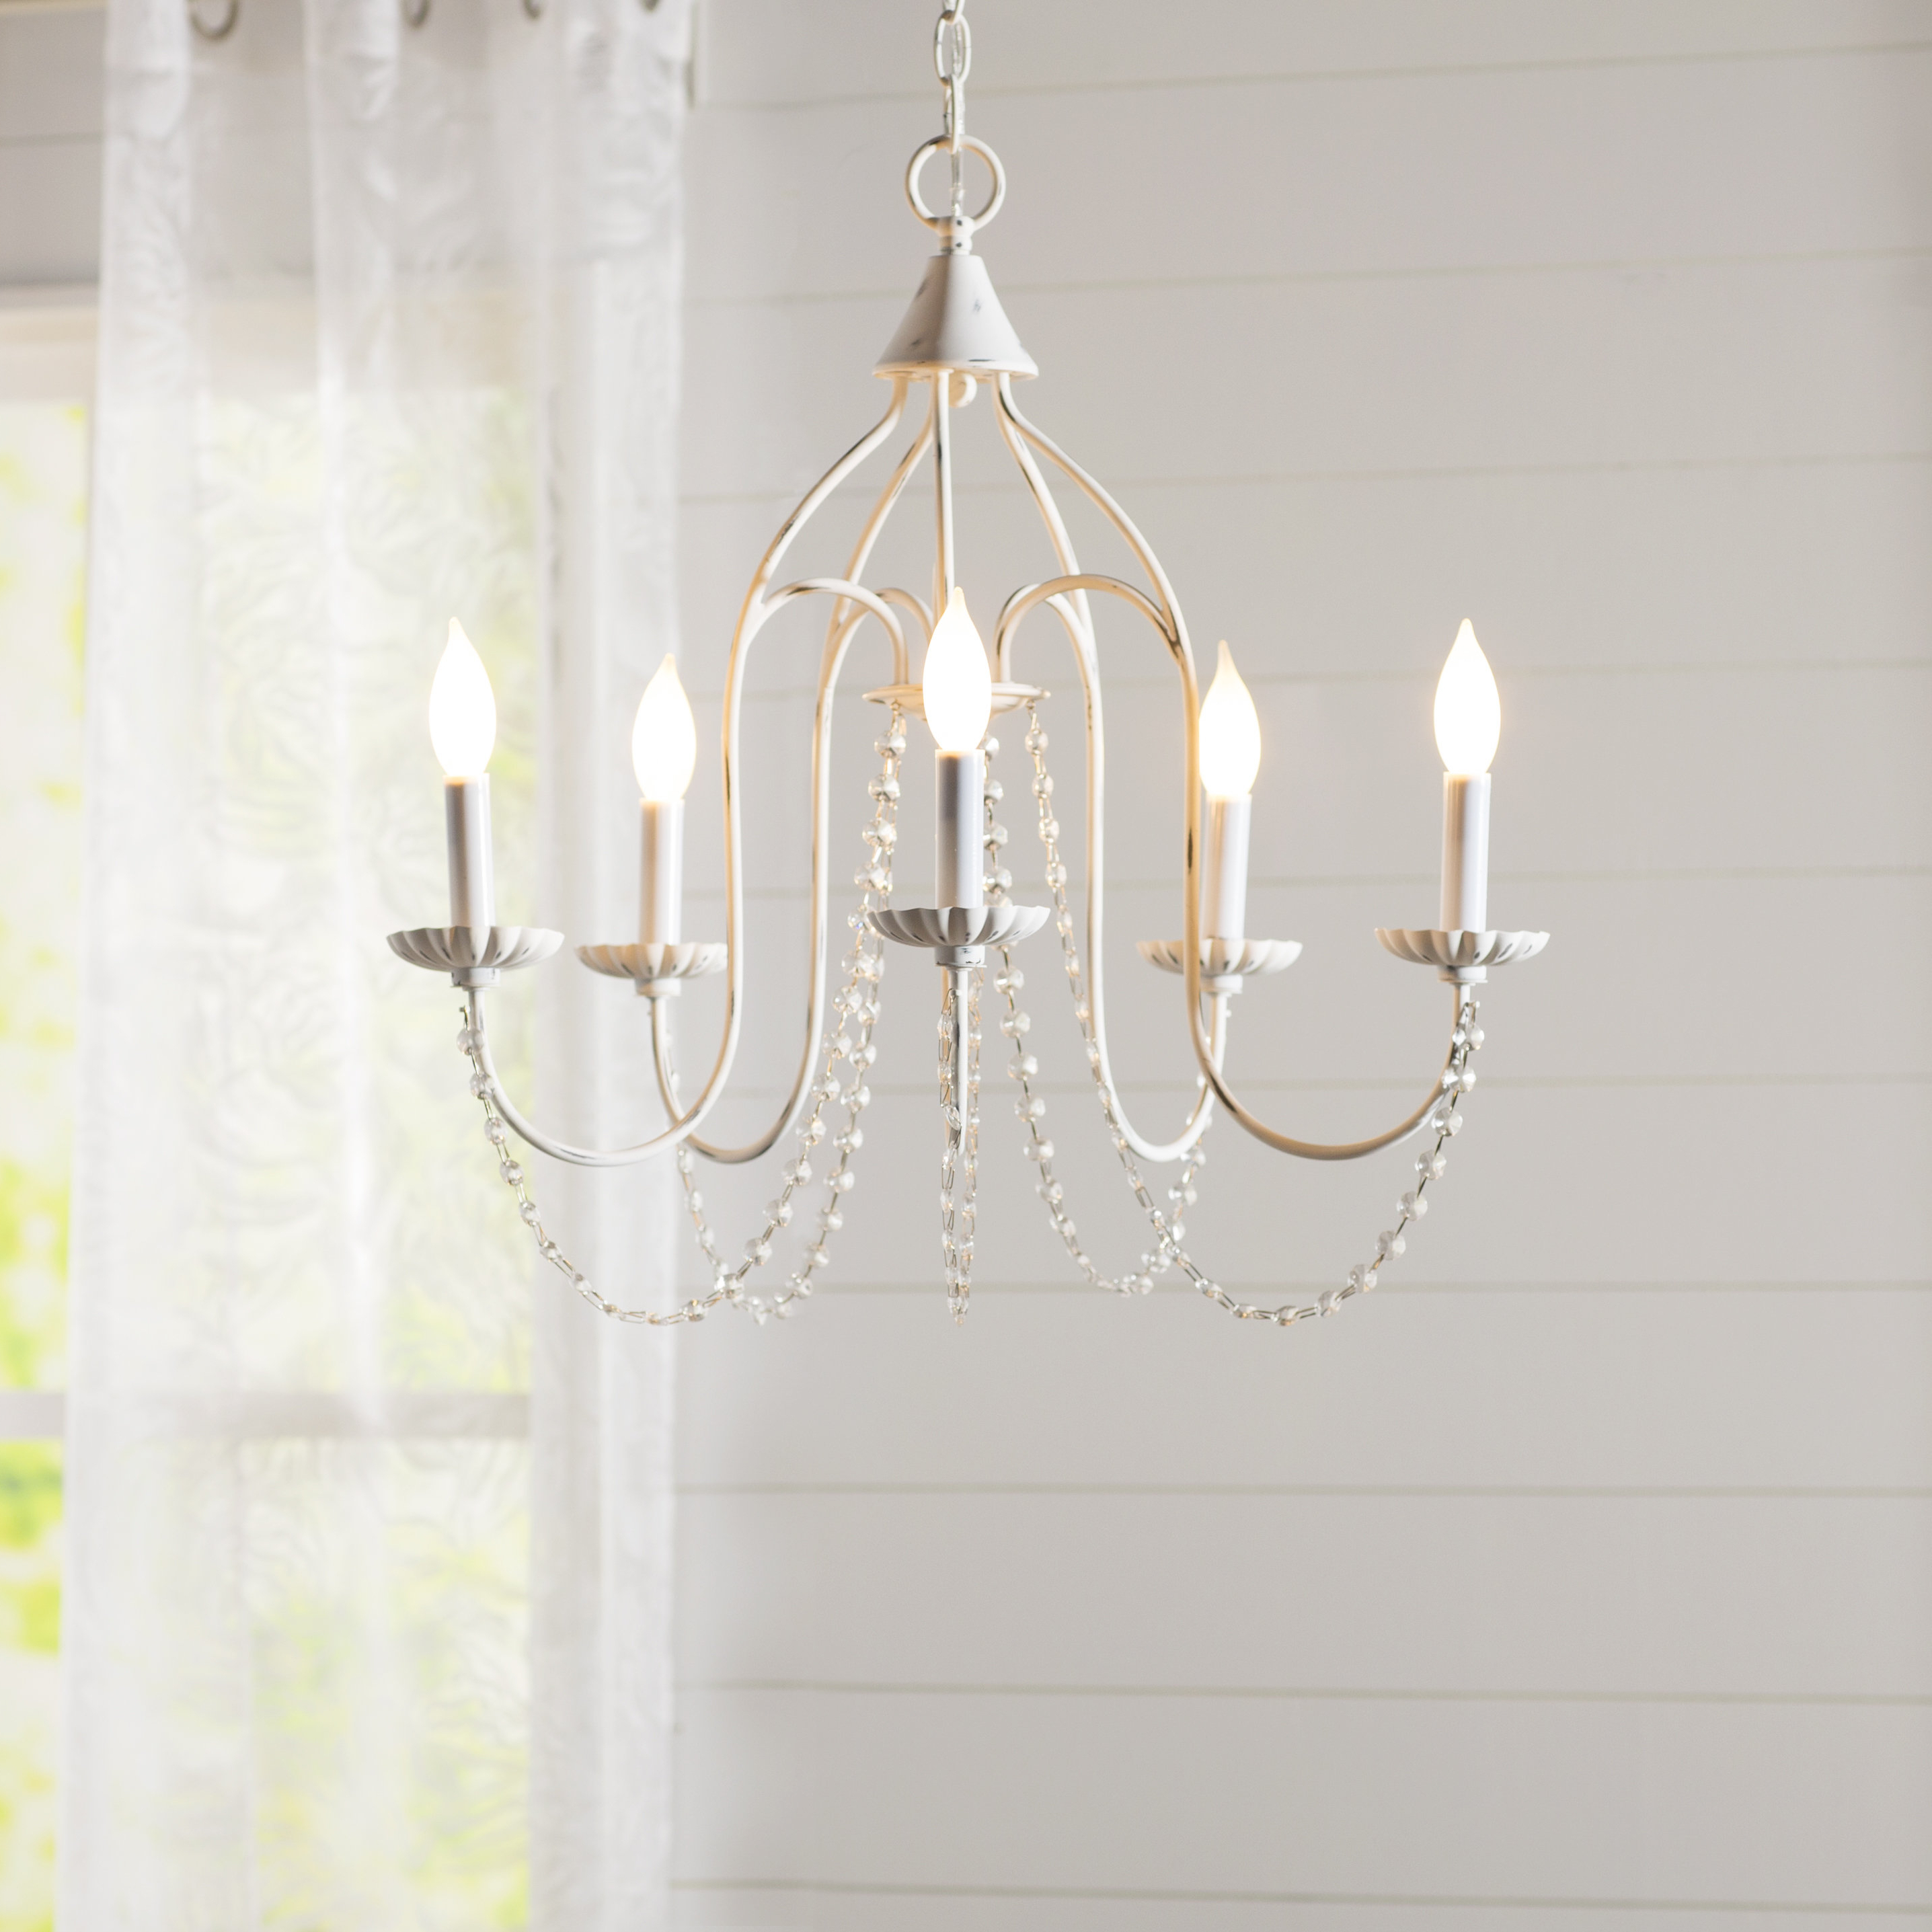 Featured Photo of Florentina 5 Light Candle Style Chandeliers